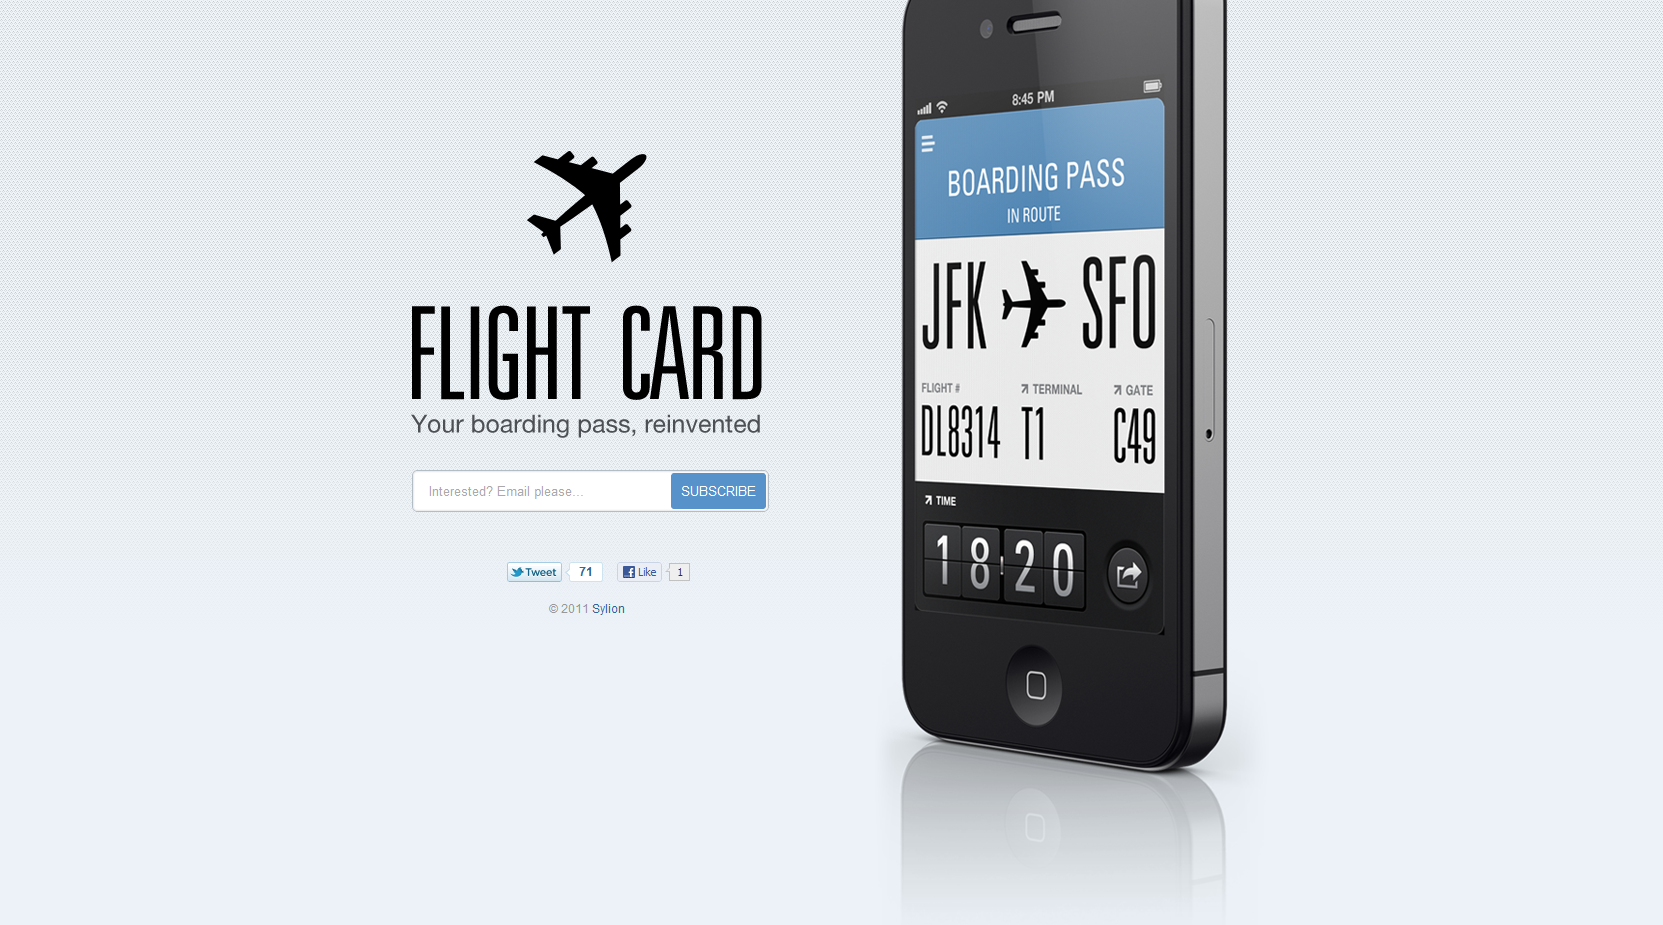 Flight Card Website Screenshot